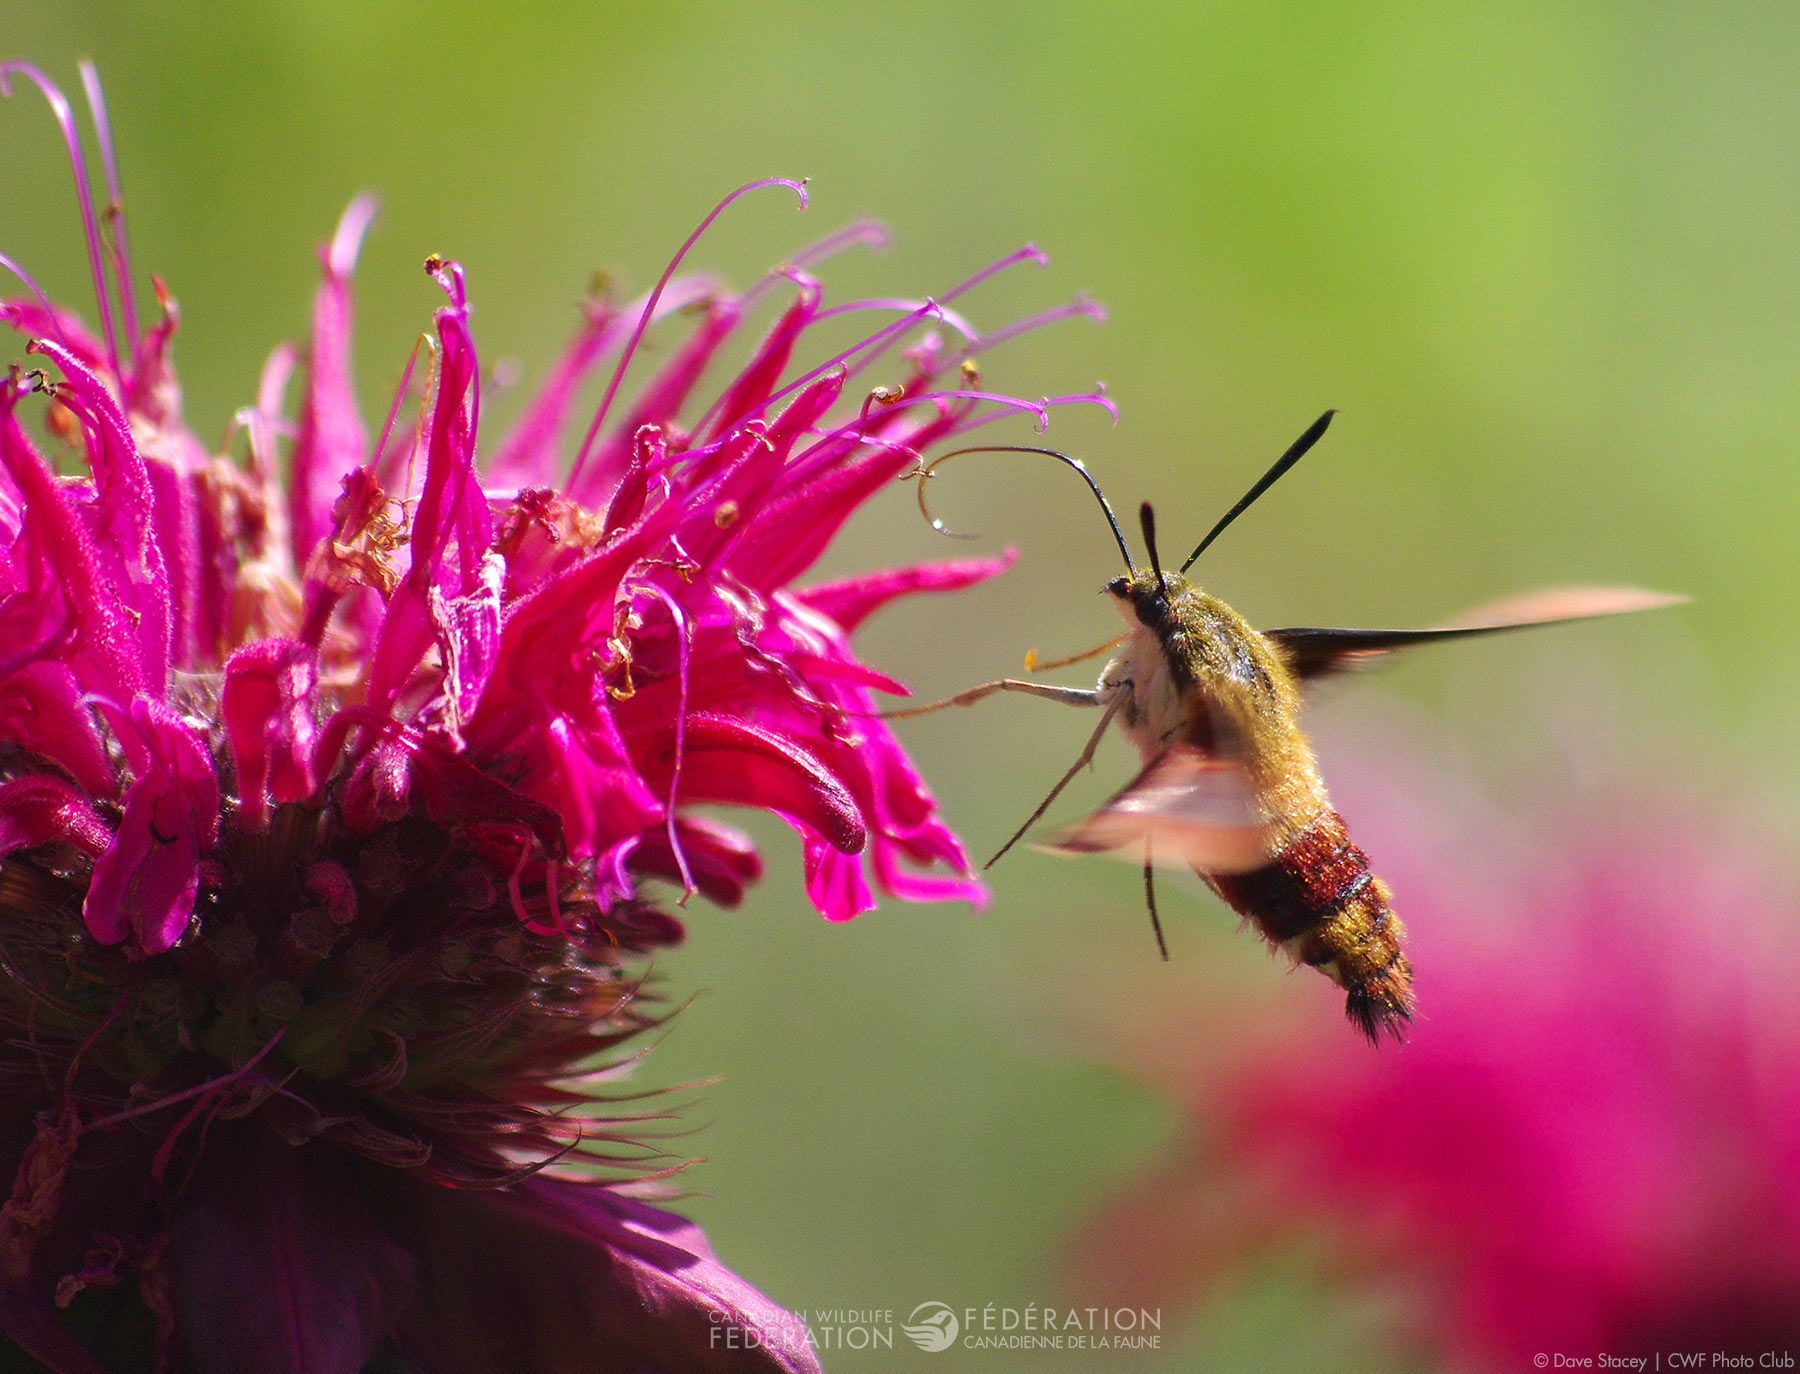 The Perfect Plants for Pollinators